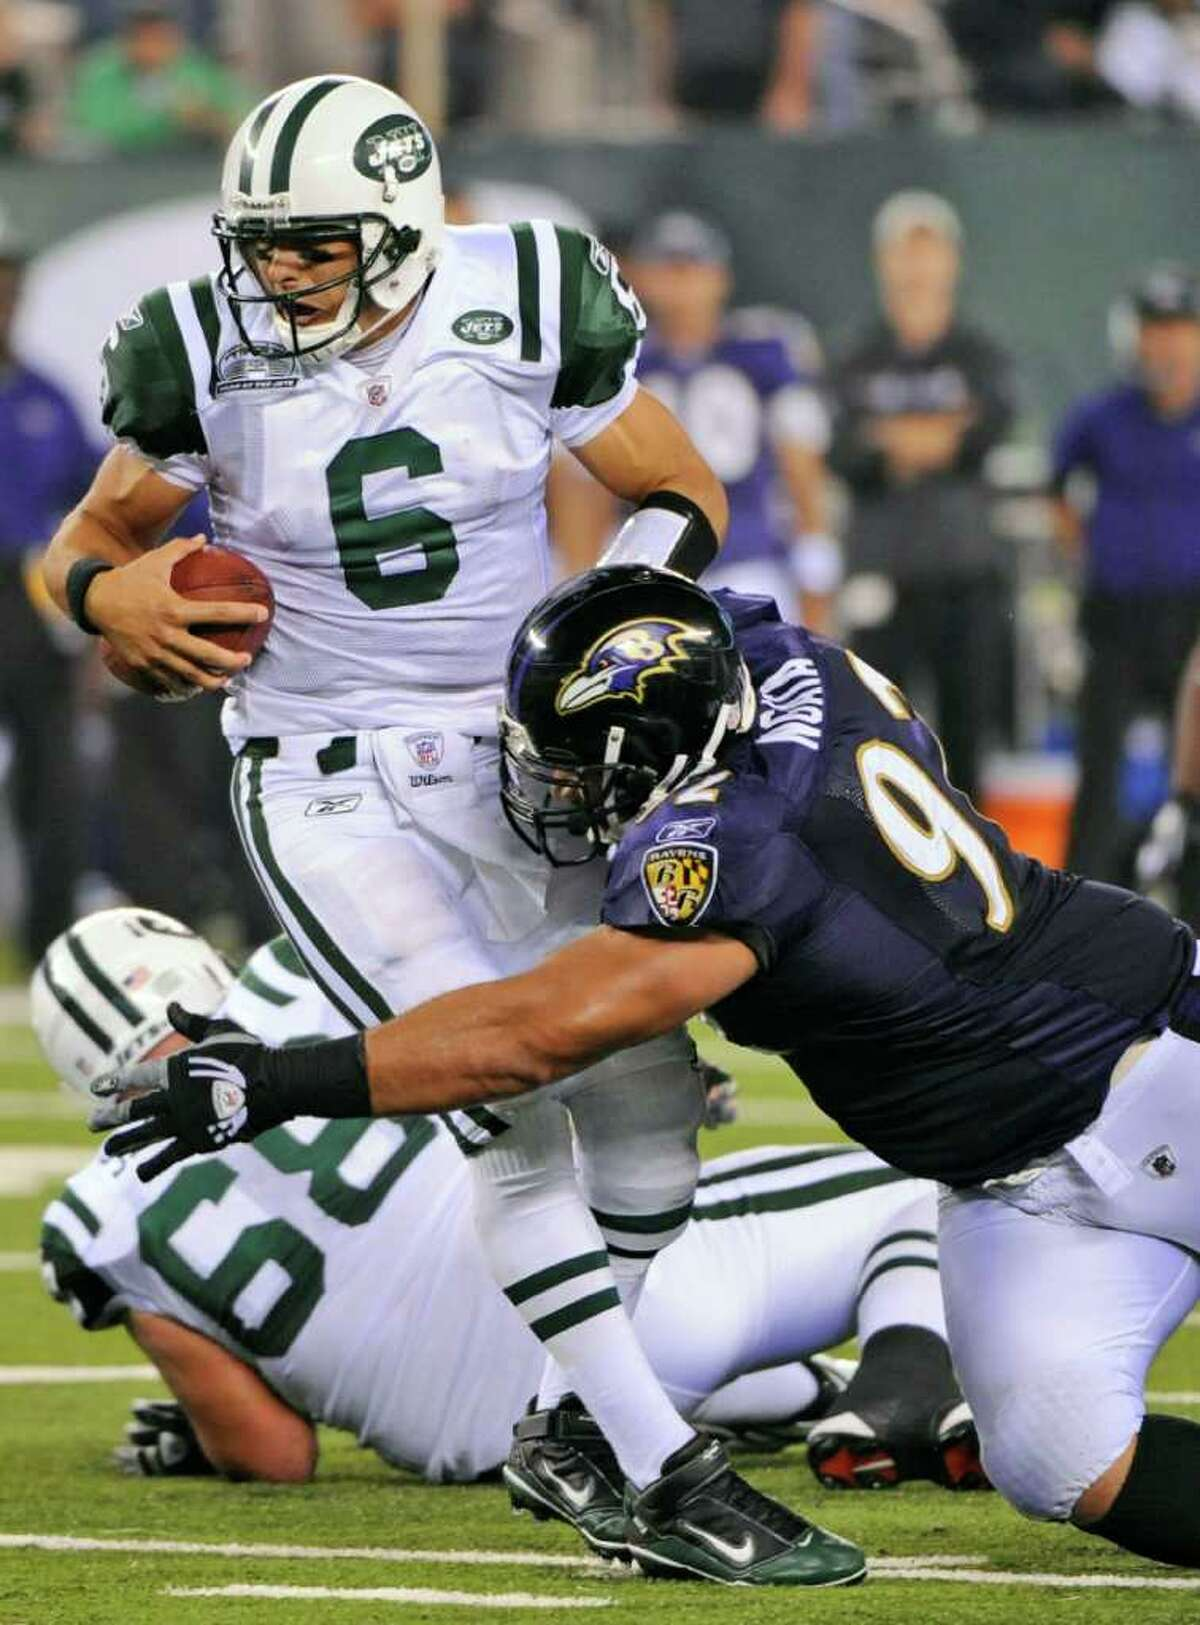 Baltimore Ravens defensive tackle Haloti Ngata (92) sacks New York Jets quarterback Mark Sanchez (6) during the fourth quarter of an NFL football game at New Meadowlands Stadium in East Rutherford, N.J., Monday, Sept. 13, 2010. The Ravens won 10-9. (AP Photo/Bill Kostroun)